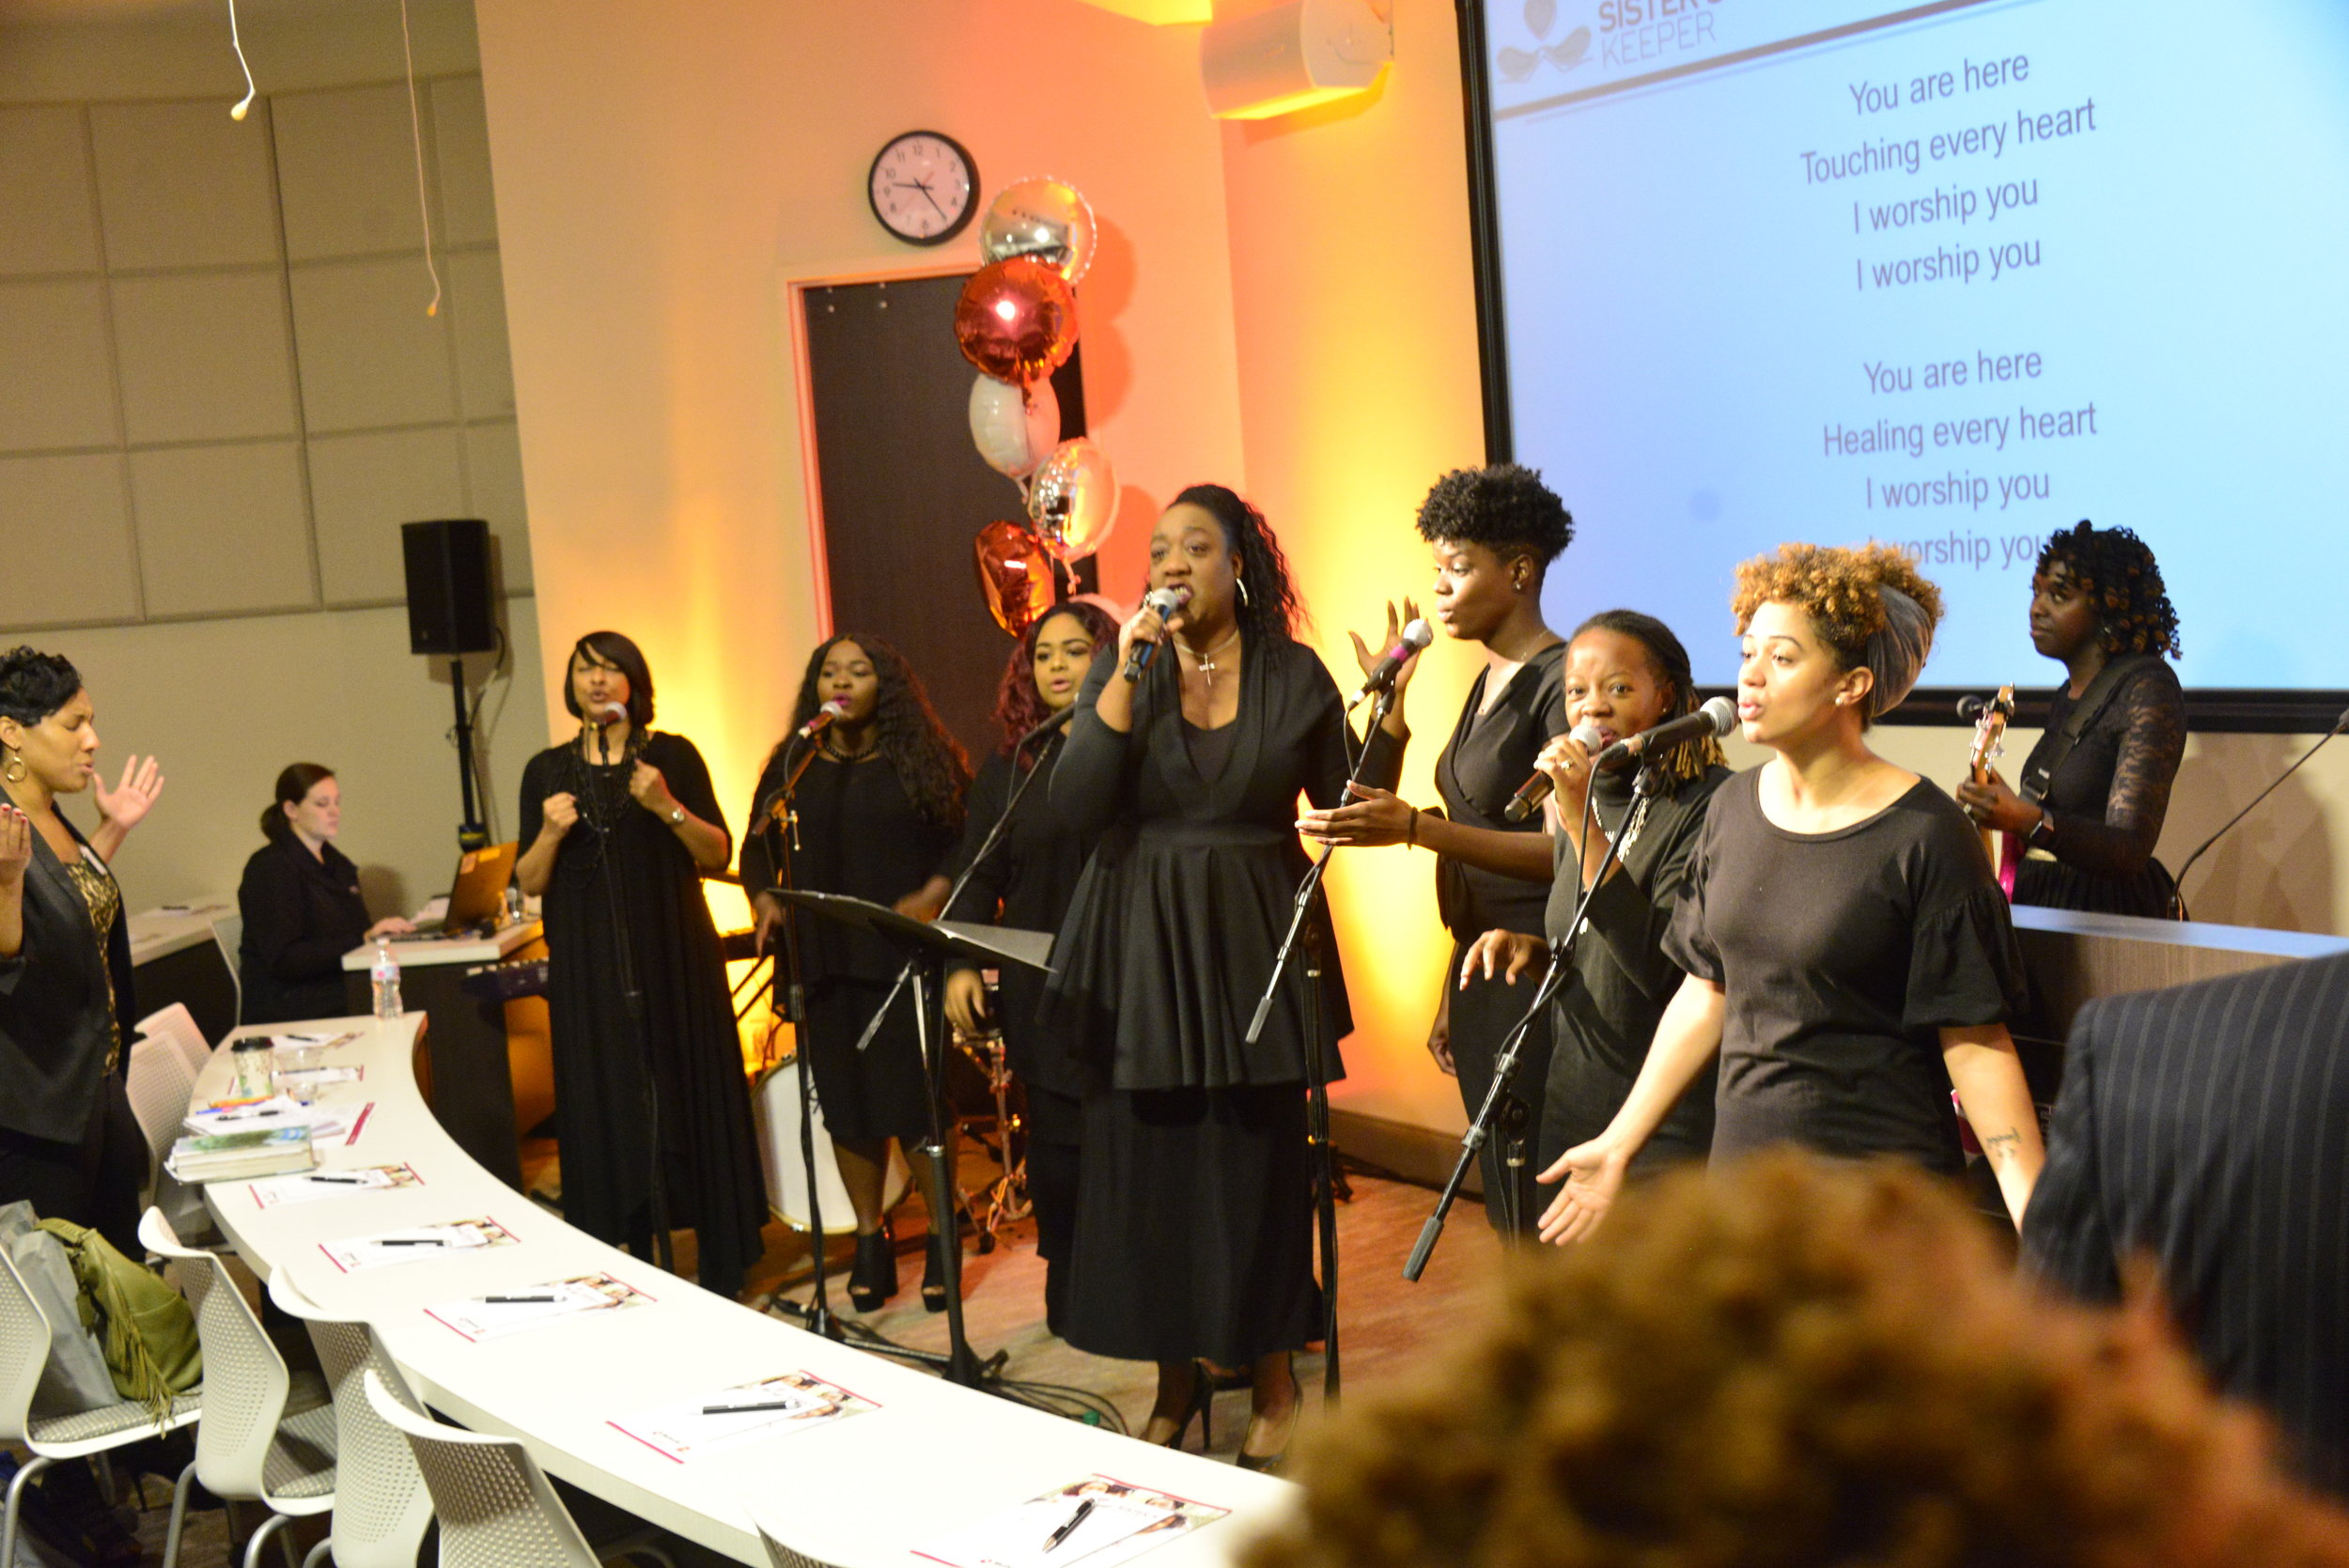 Ephie Johnson and the Praise and Worship Ministry lead music at the opening worship service.